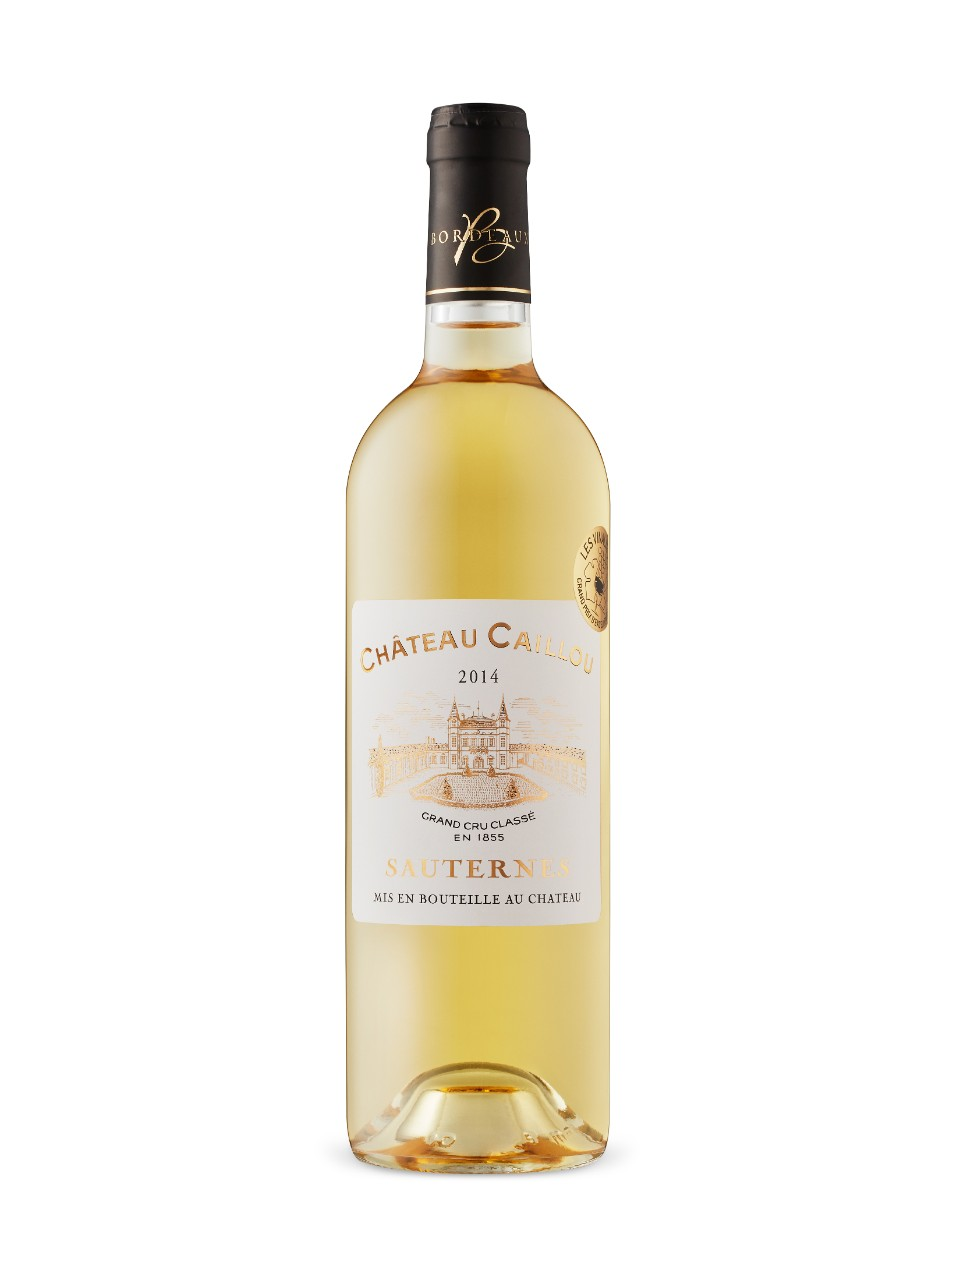 Image for Chateau Caillou Sauternes Grand Cru 2014 from LCBO